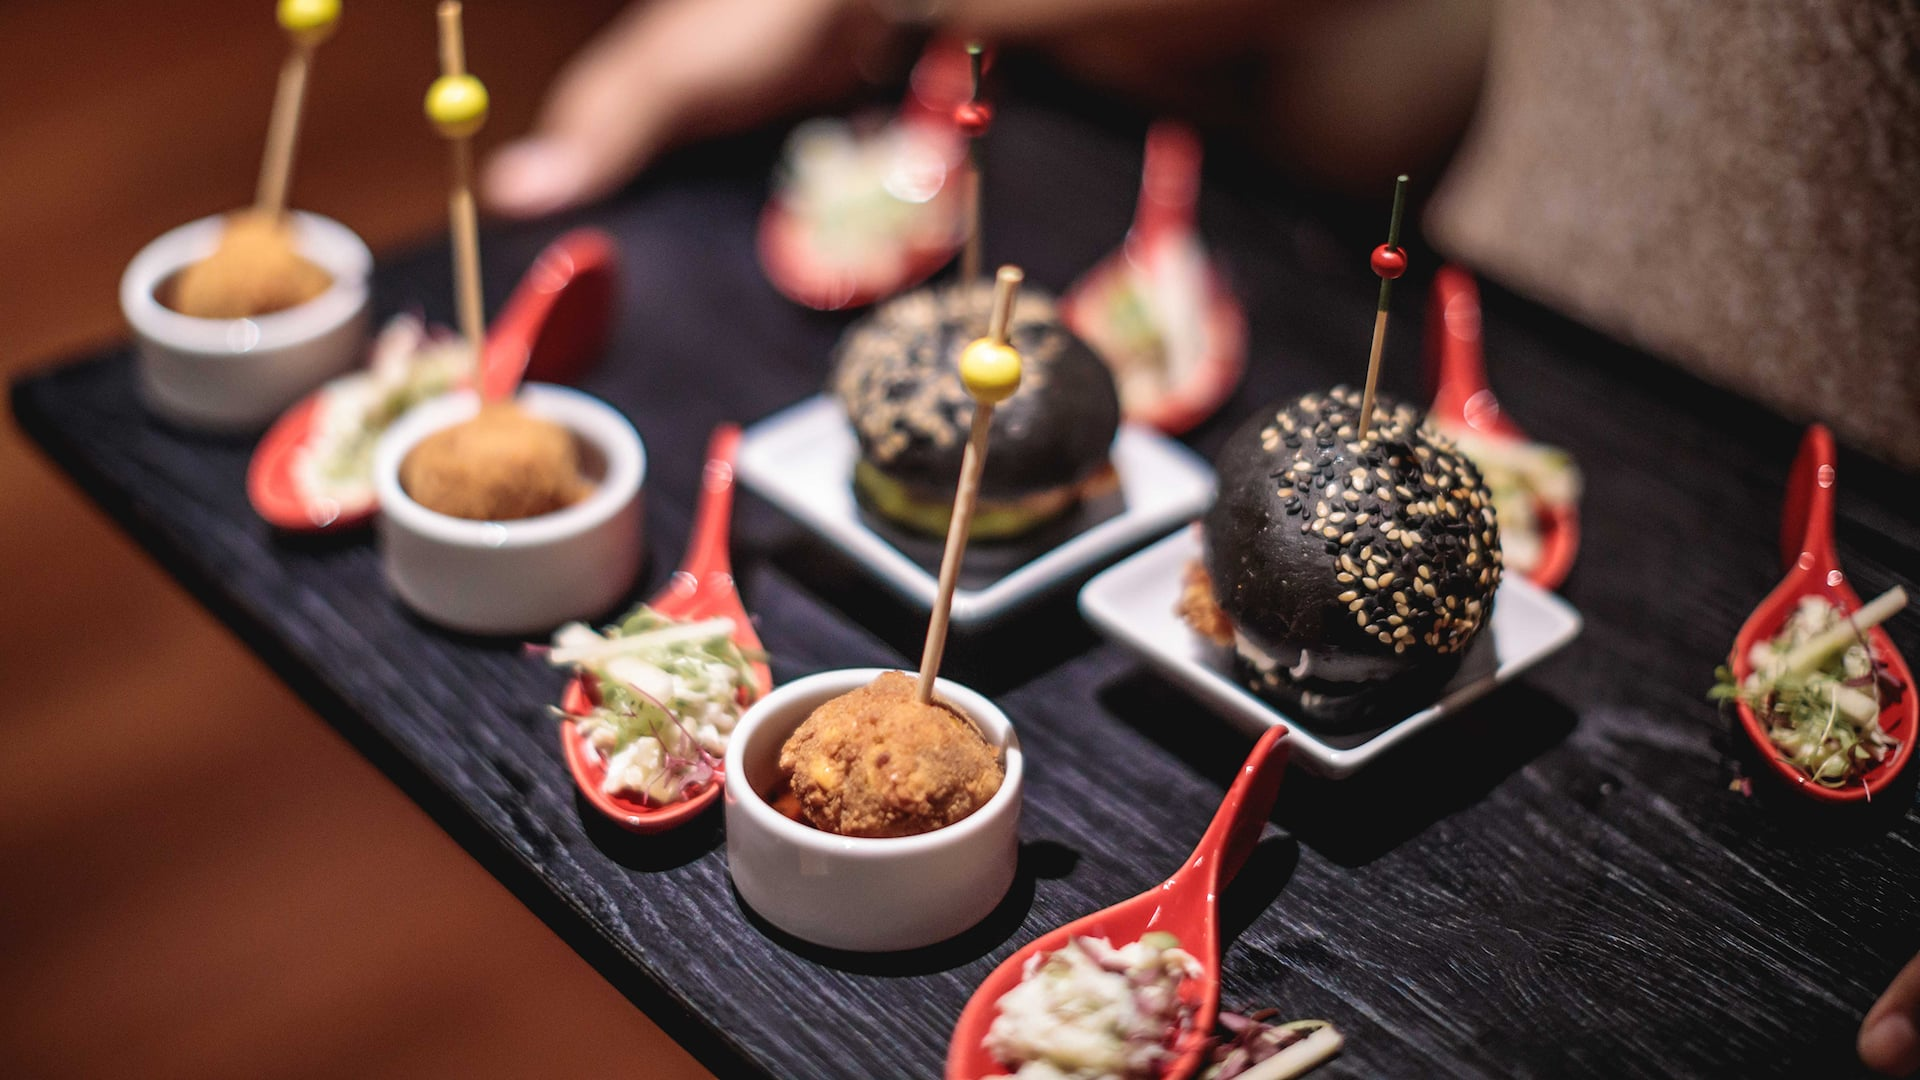 Canape and Cookies at Grand Hyatt Bali Restaurants